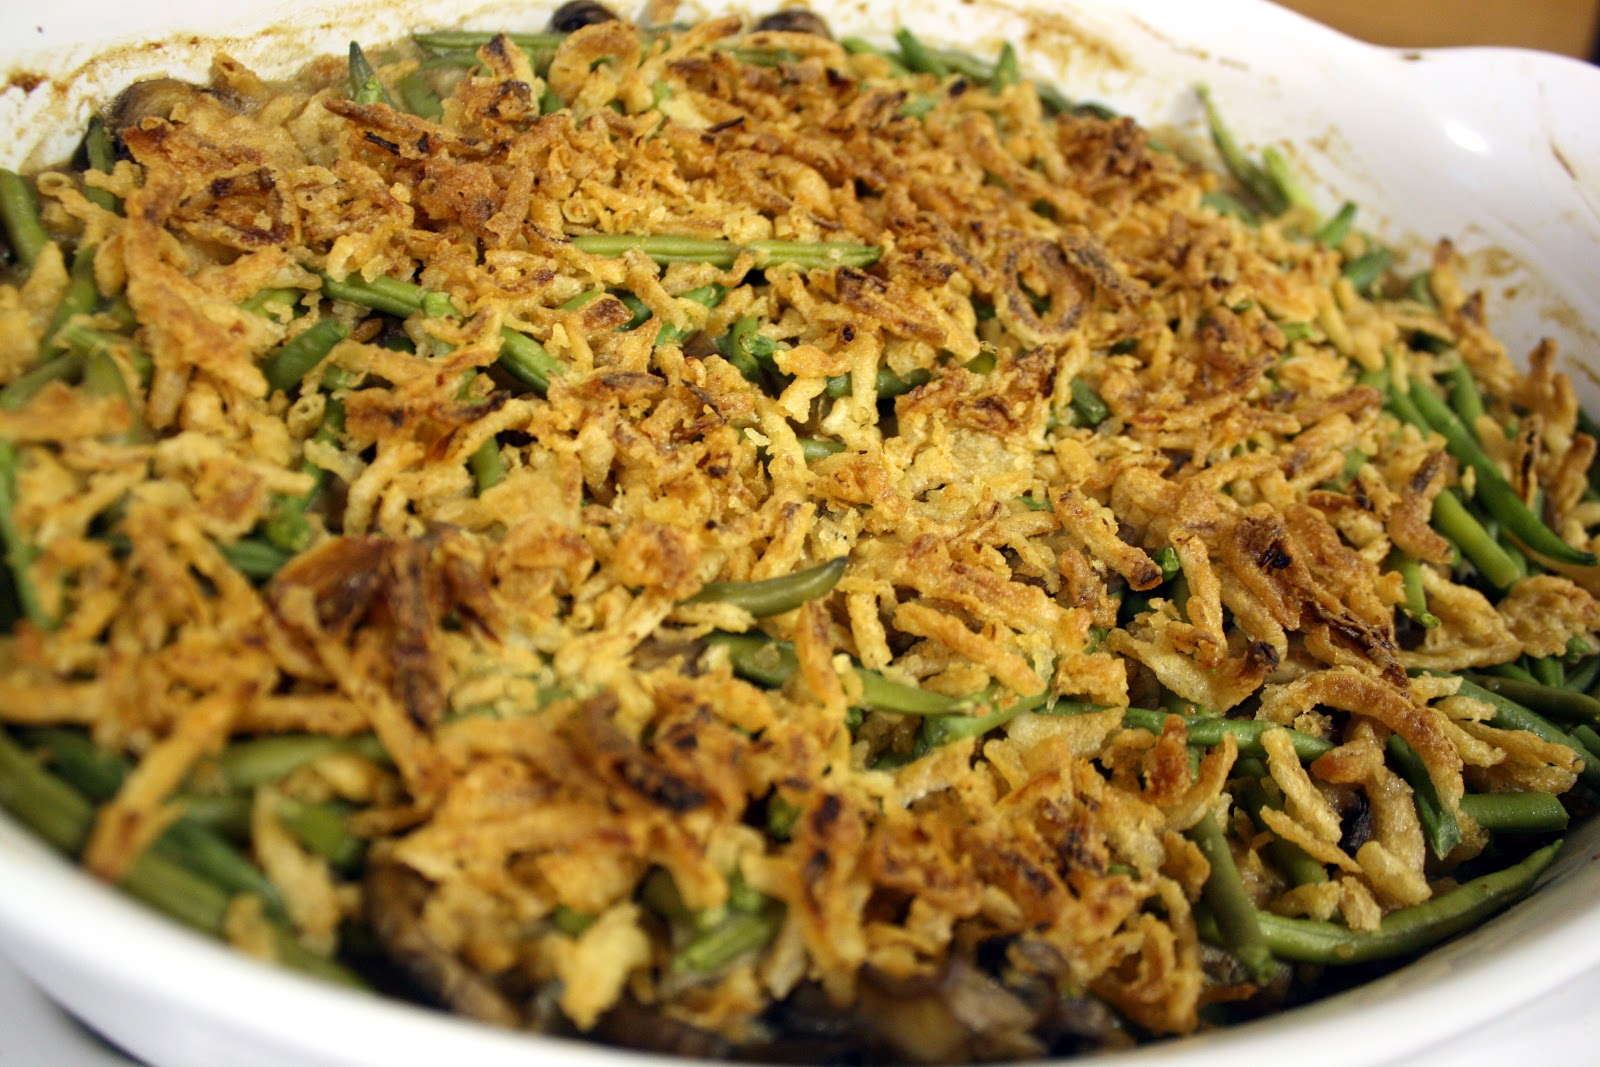 Green+Bean+Casserole+Post-Bake2.jpg